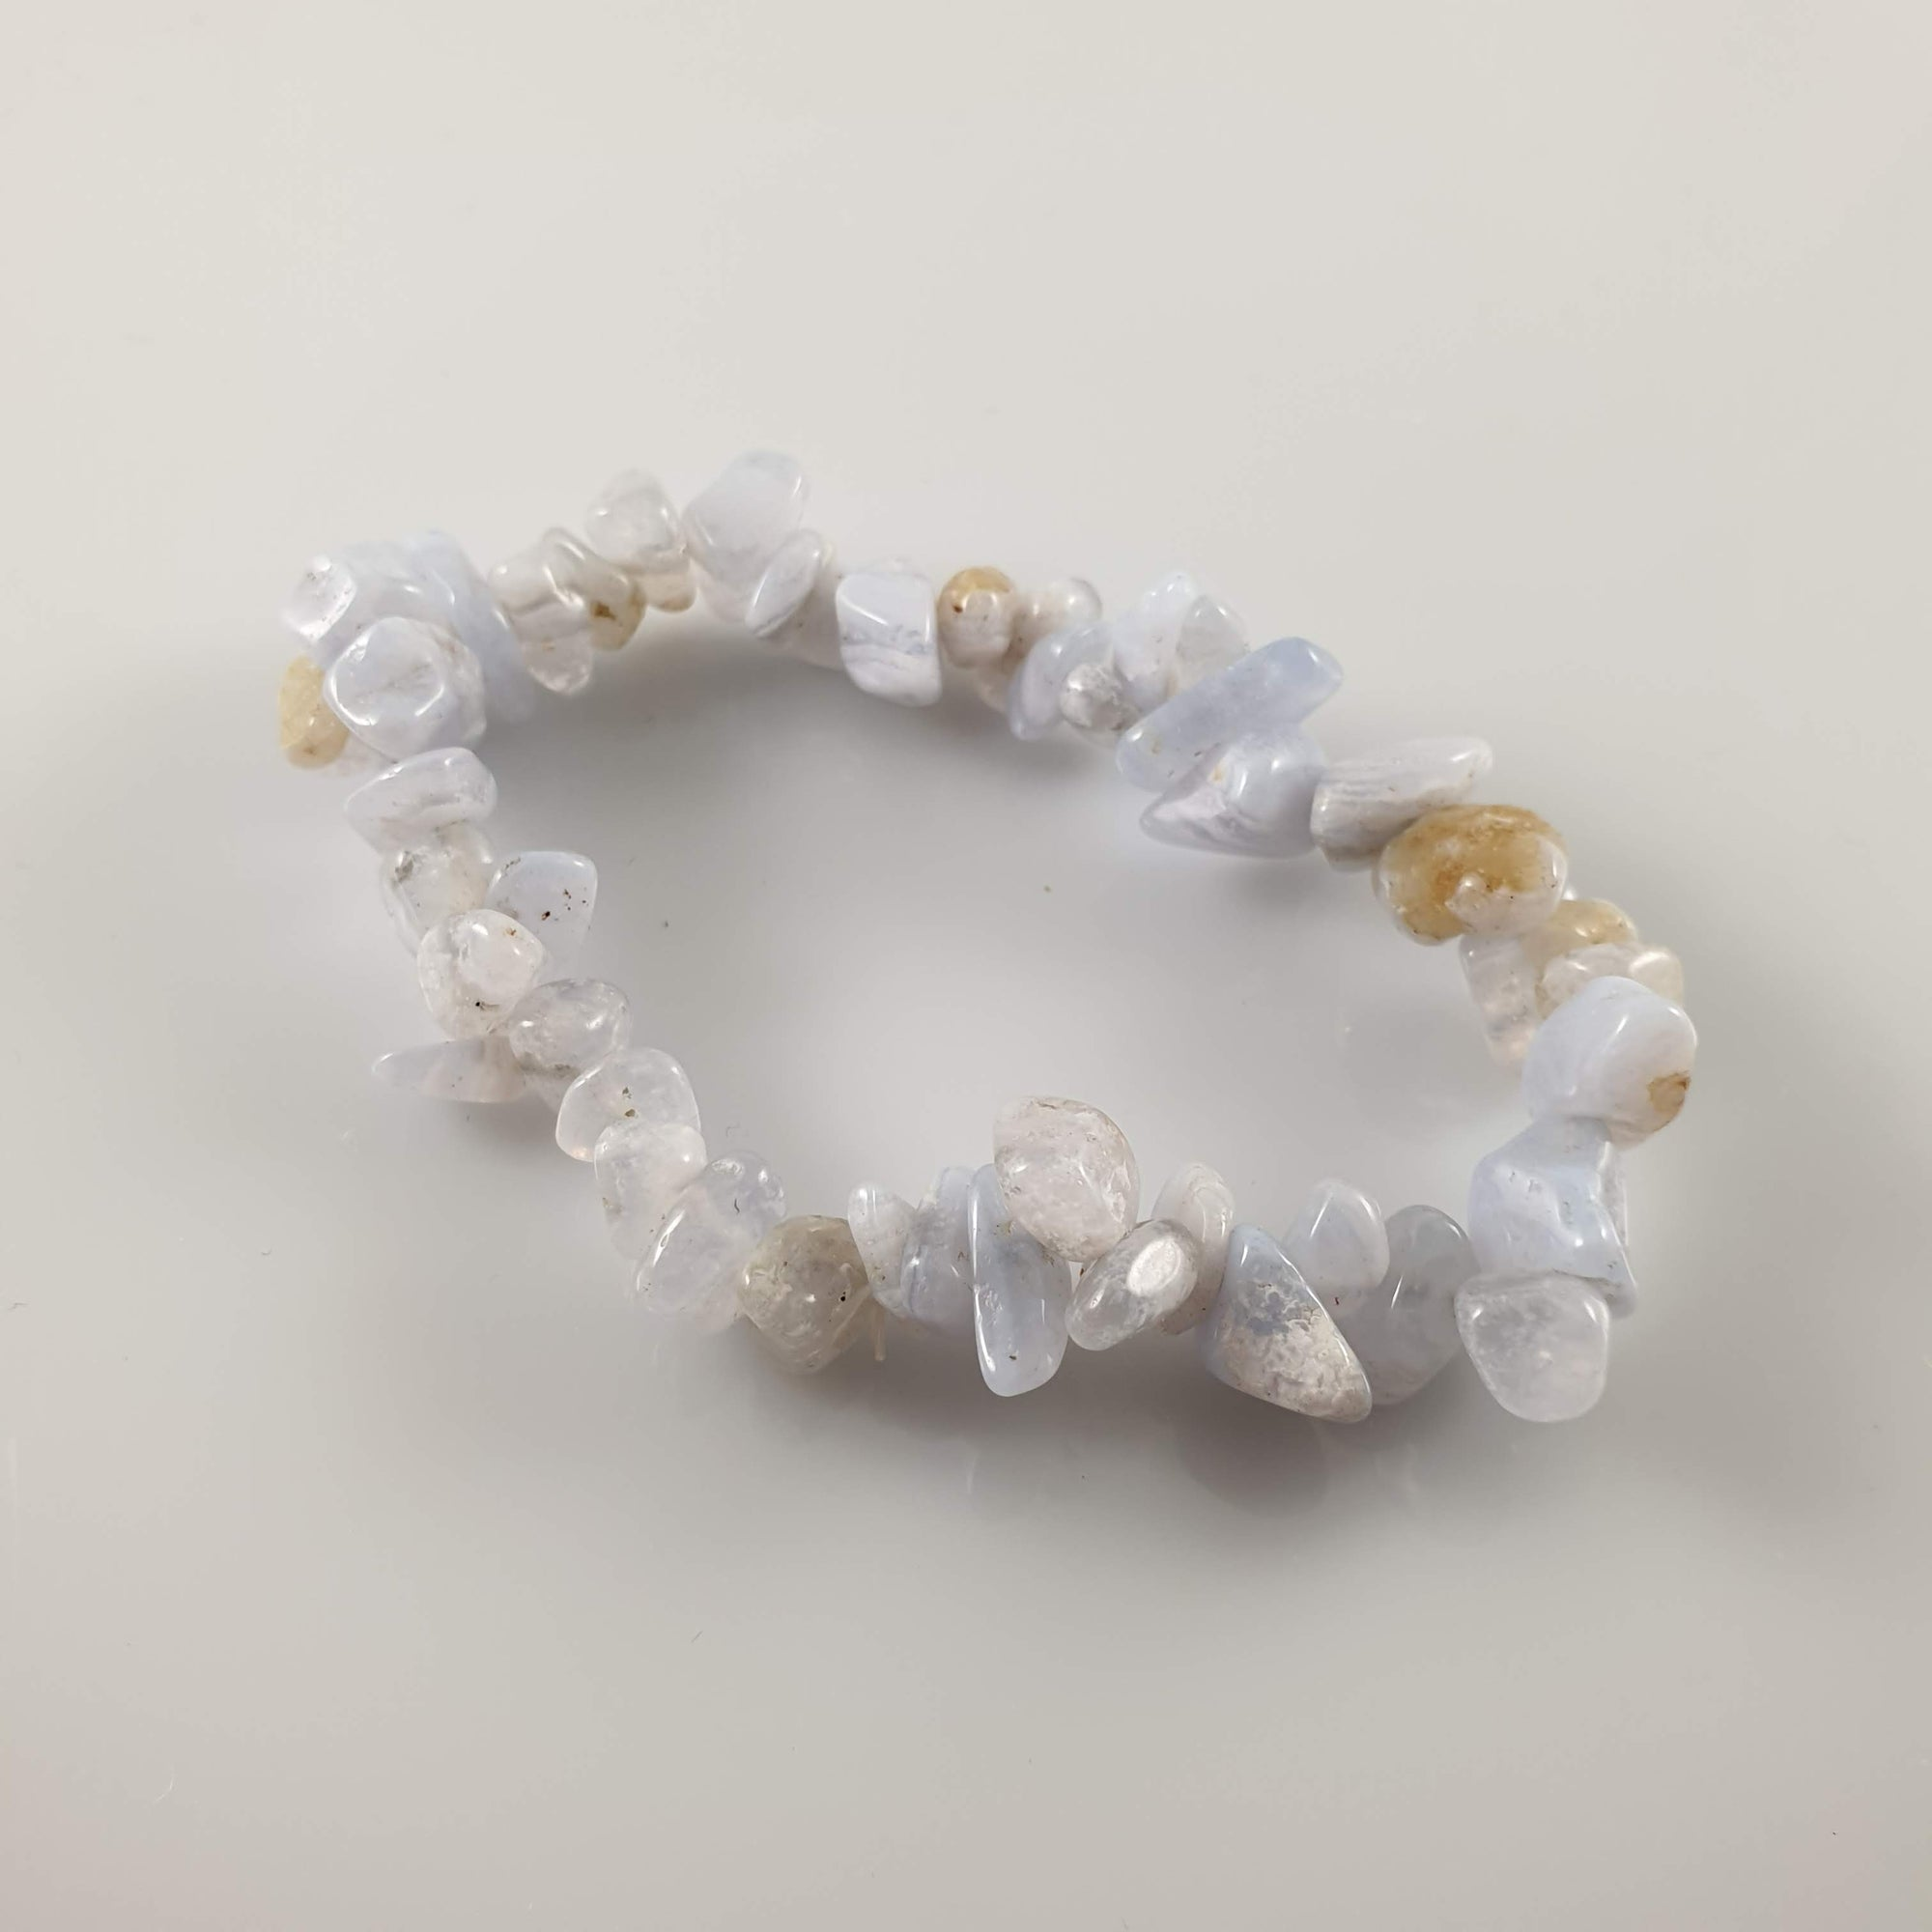 Chalcedony Chip Crystal Bracelet - Rivendell Shop NZ